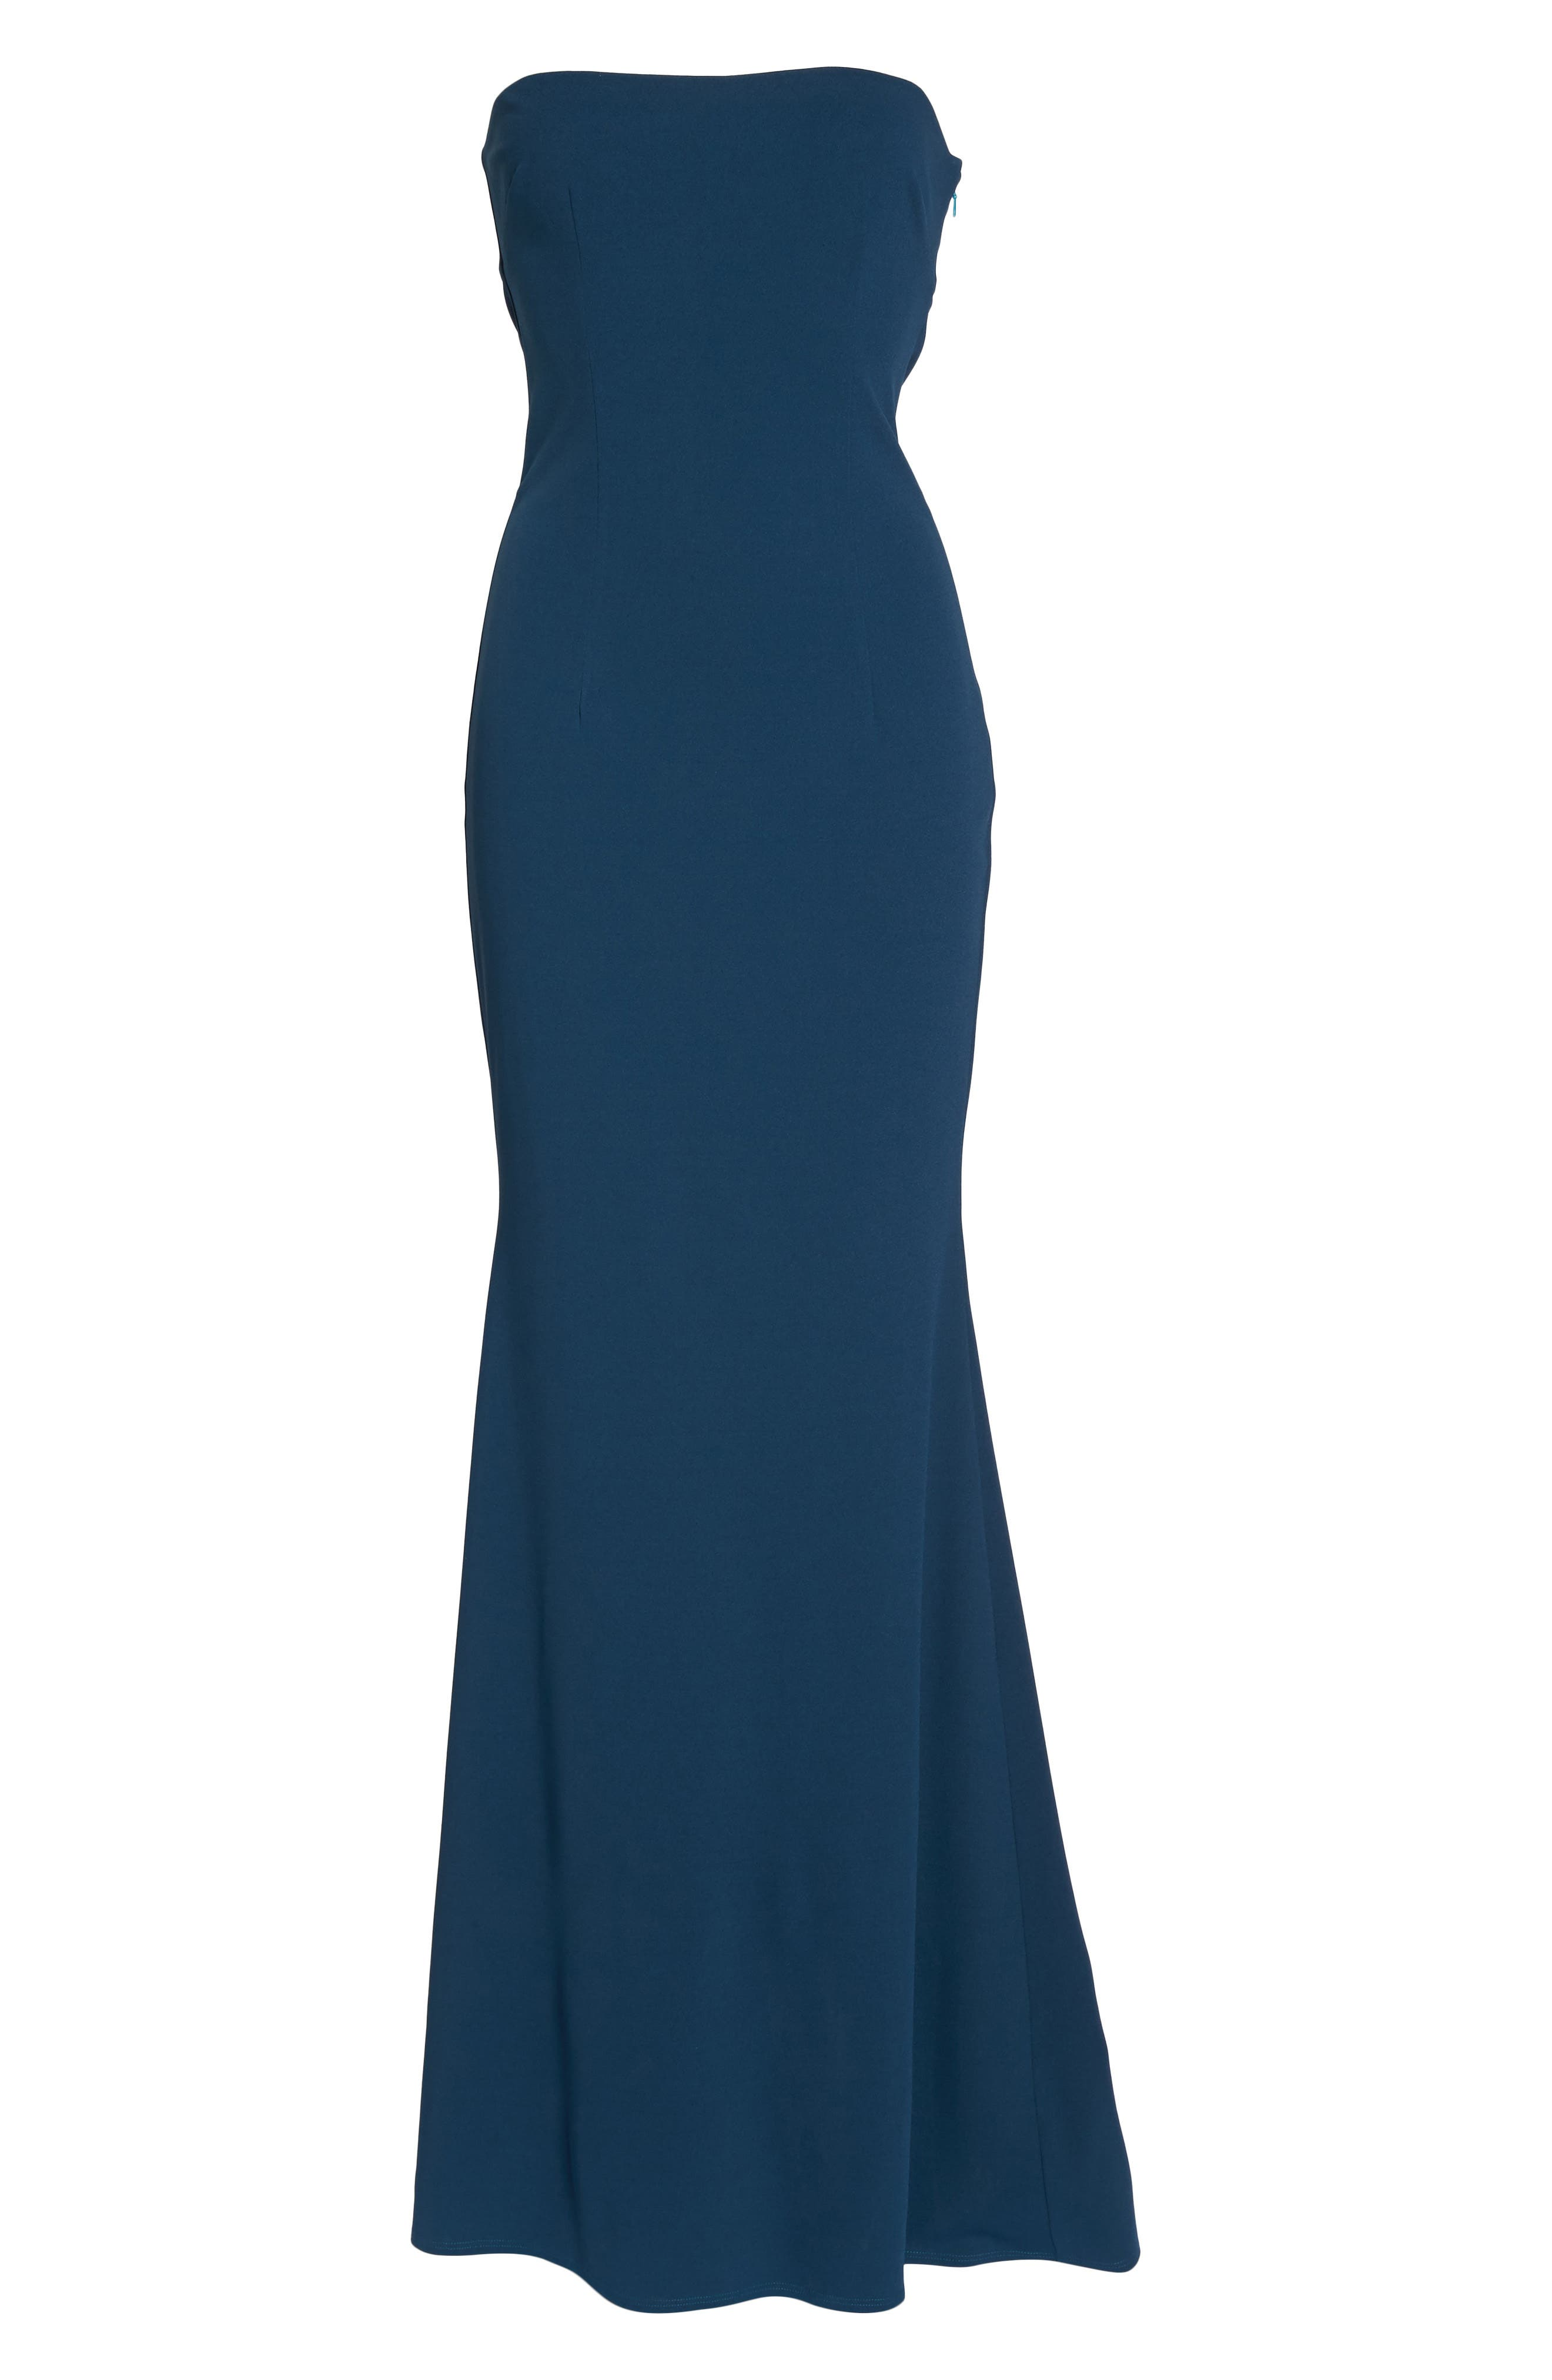 Mary Kate Strapless Cutout Back Gown,                             Alternate thumbnail 6, color,                             TEAL